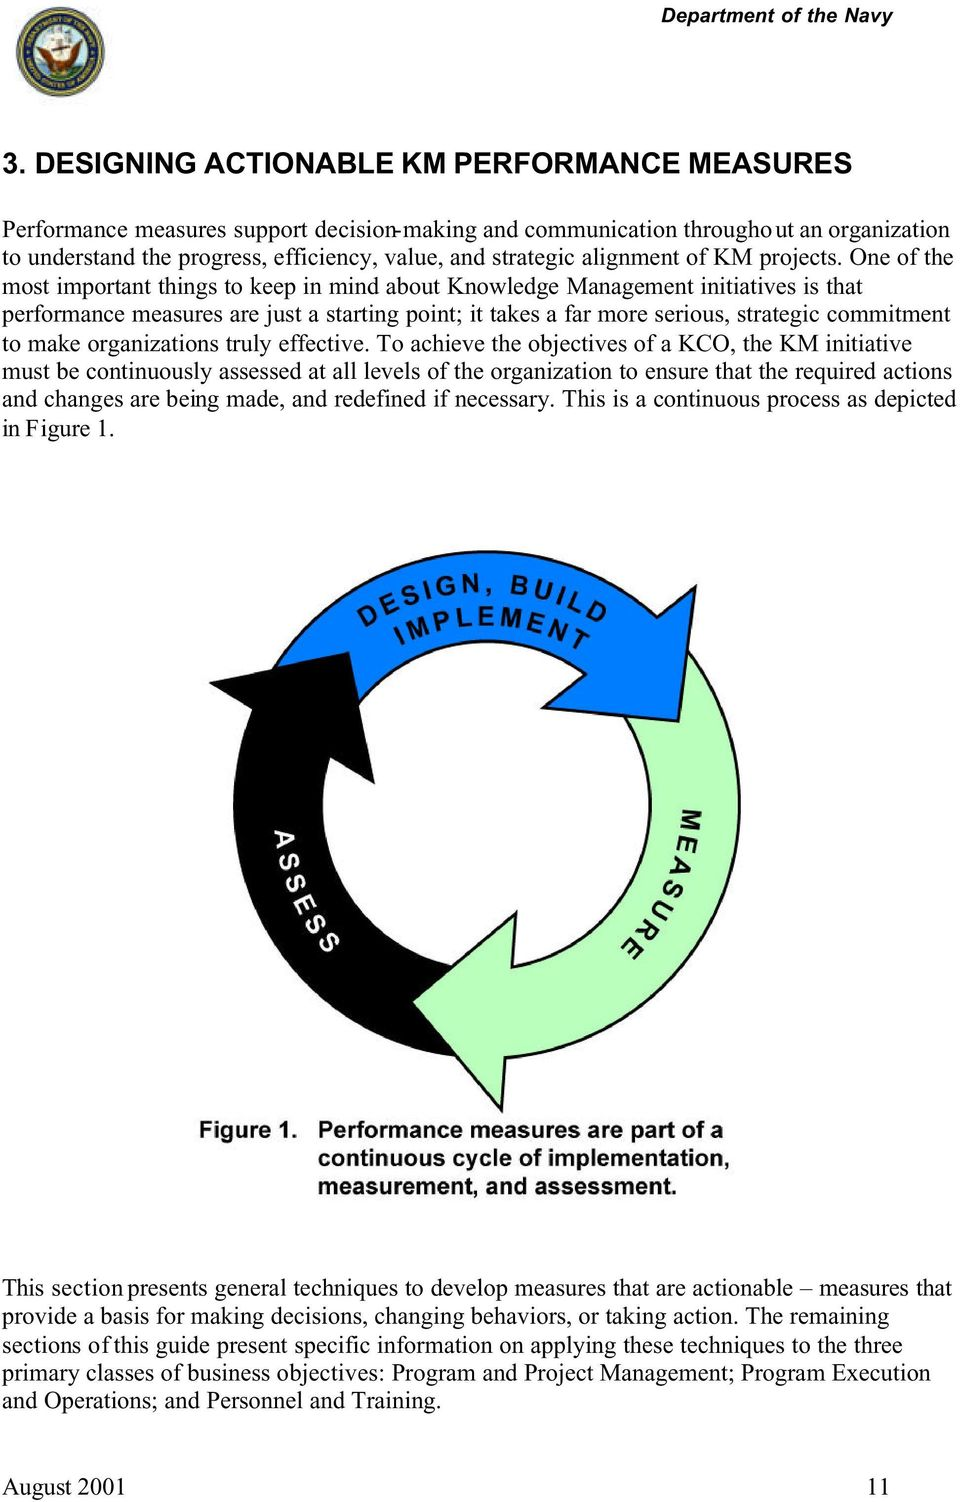 One of the most important things to keep in mind about Knowledge Management initiatives is that performance measures are just a starting point; it takes a far more serious, strategic commitment to